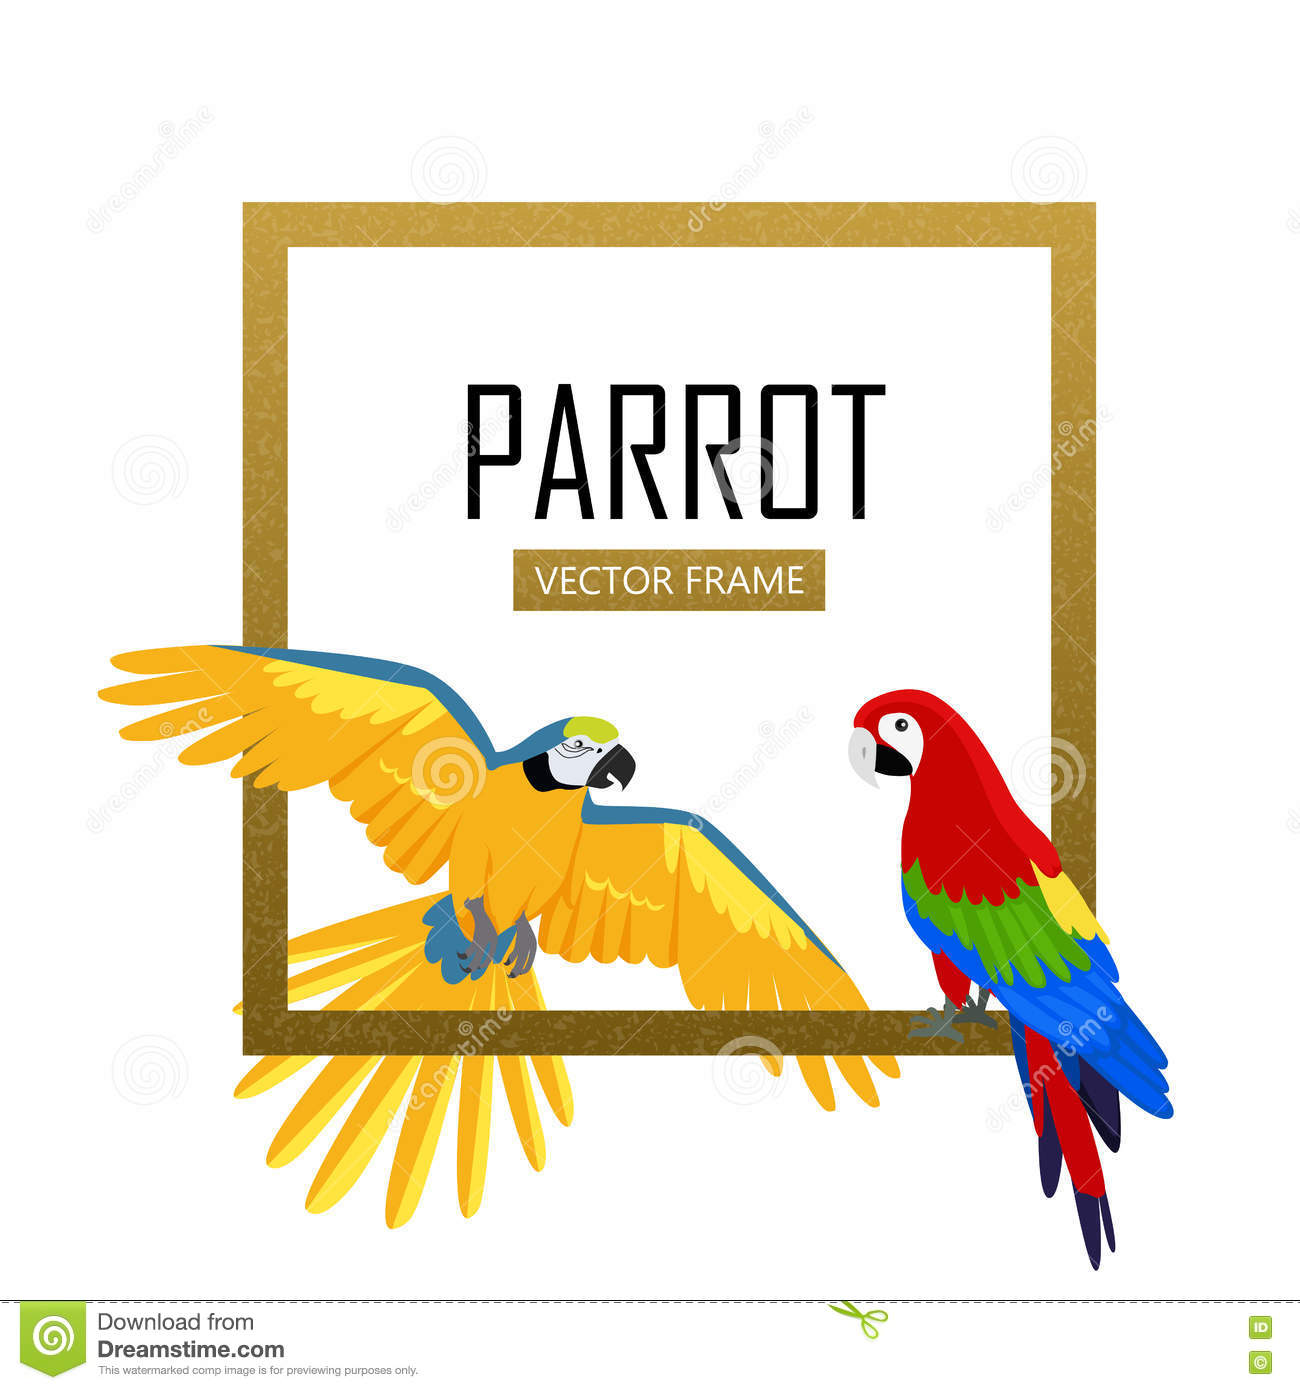 587ce6e97 Ara parrot vector frame. Birds of Amazonian forests in flat design  illustration. Fauna of South America. Beautiful Ara parrots for icons,  posters, ...